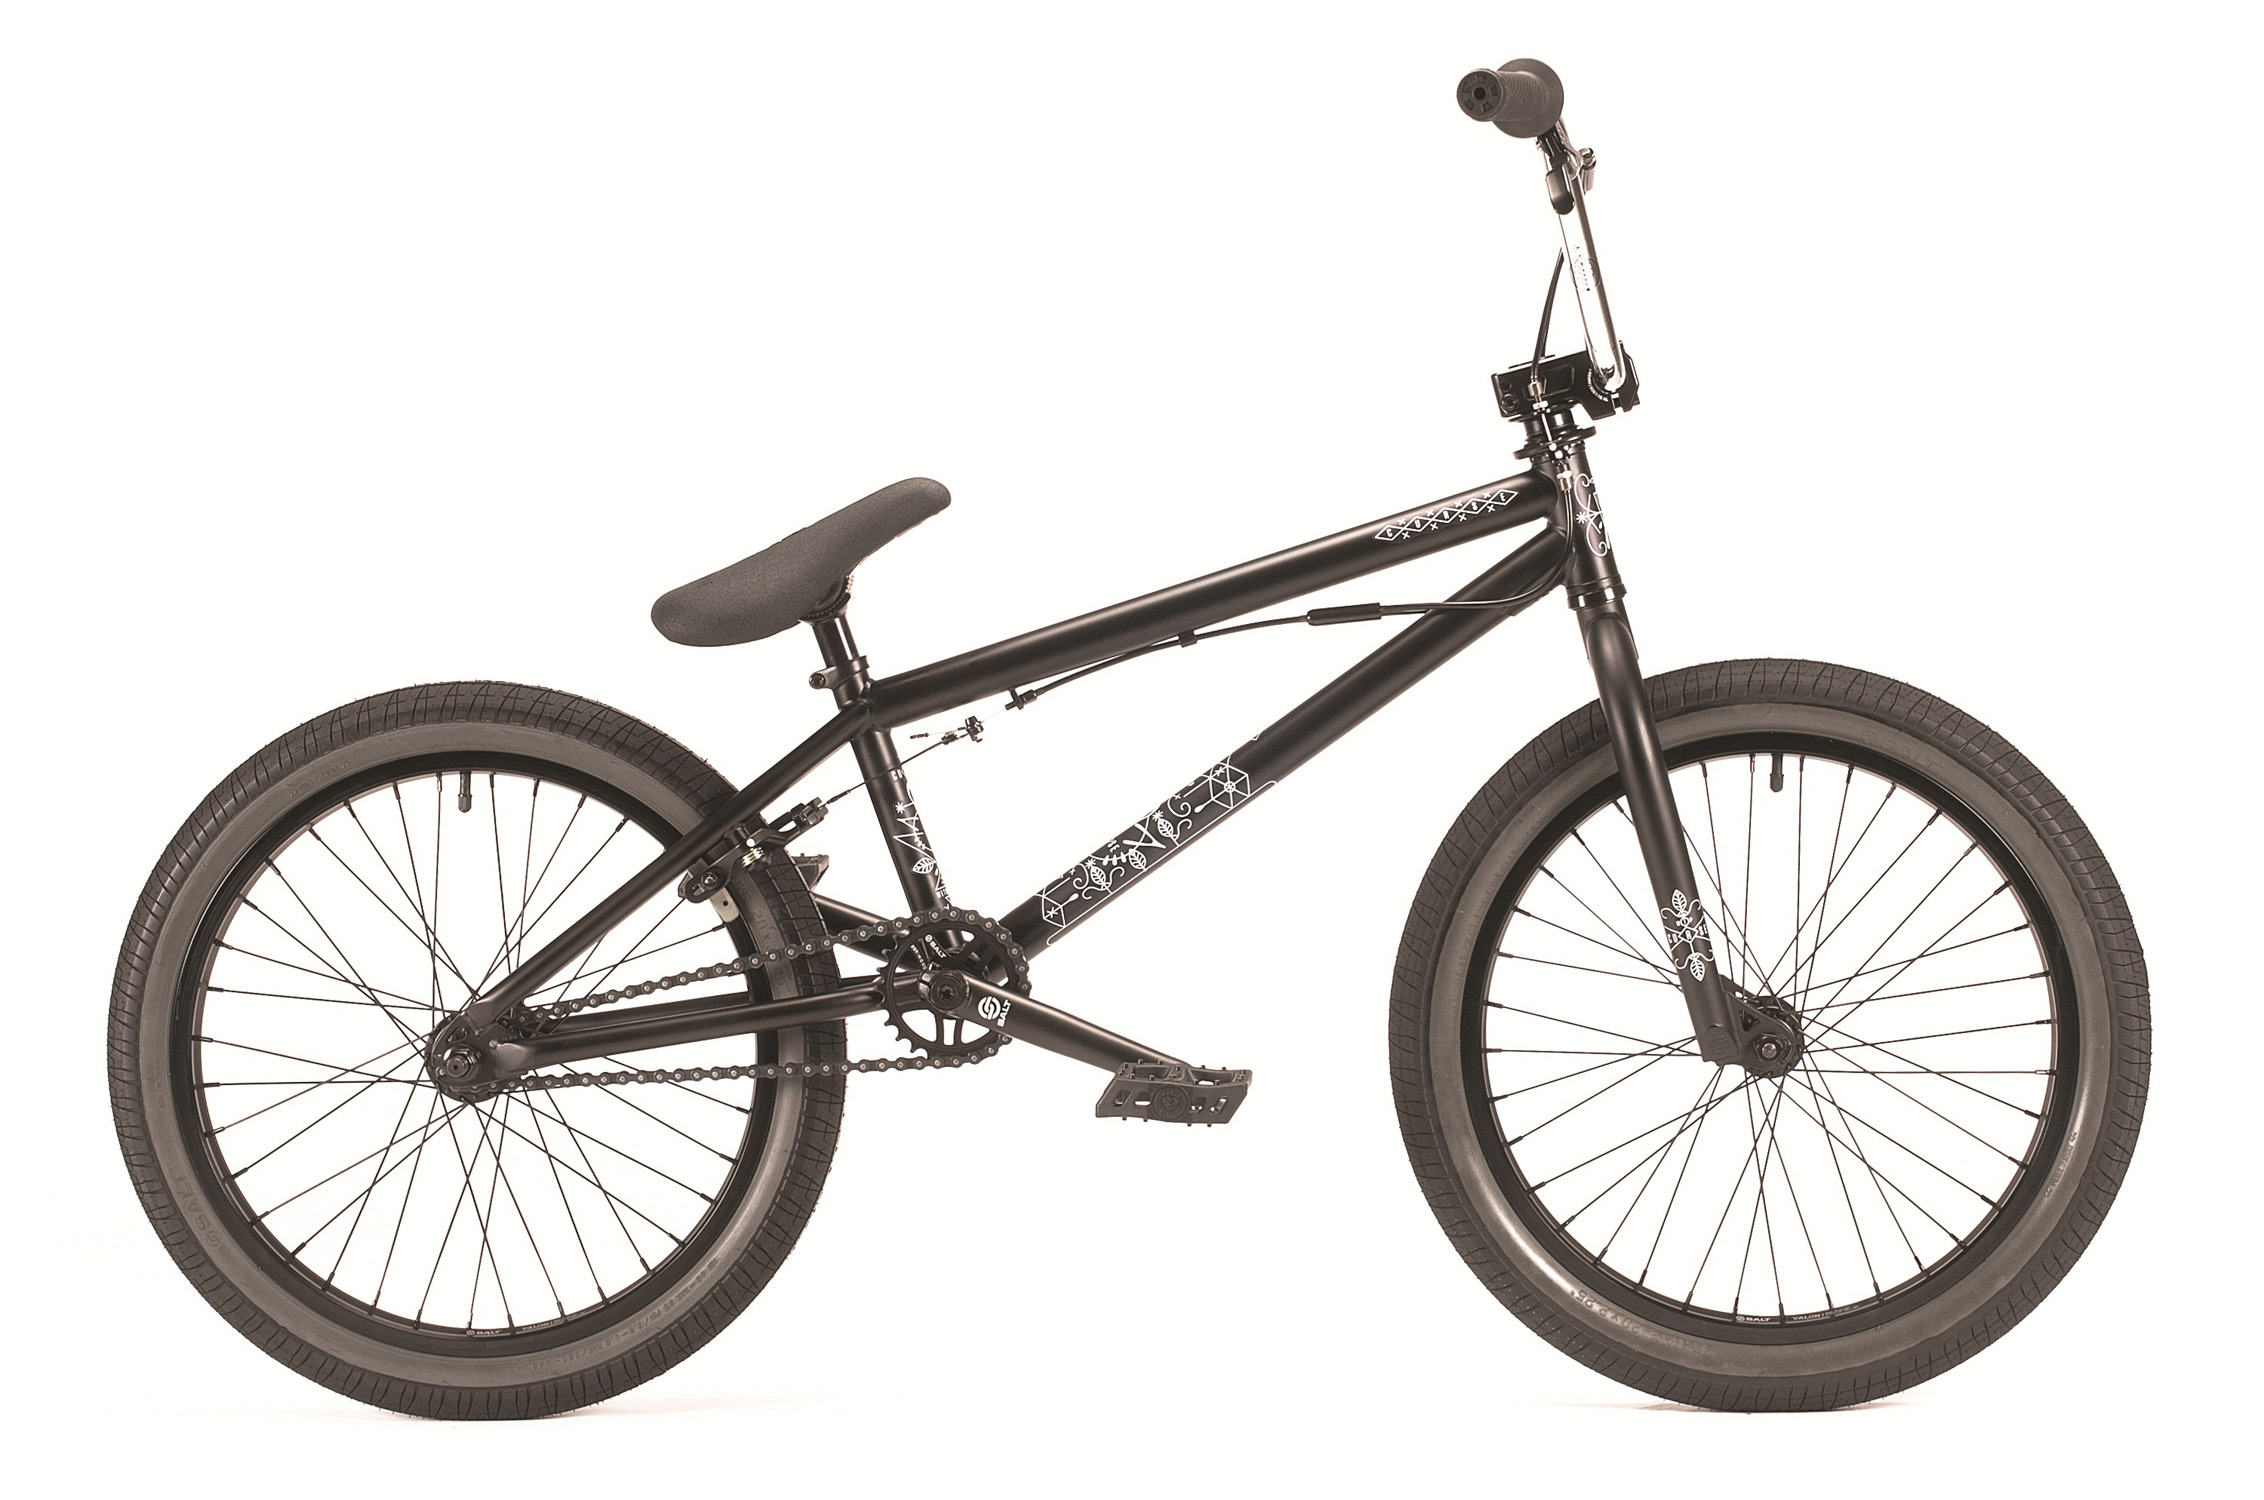 "BMX The Curse is brand new in the range featuring a 4130 CrMo DT, 25t-9t gearing, and a pivotal seat. Most entry level completes just can't compete w/ extras like eCLAT pedals and a 3pc CrMo crankset but WTP kitted the new kid on the block out w/ an otherworldly cluster of awesome parts. In fact the Curse is a perfect option for a young starter as its nice short 20"" top tube and 13.15"" chain stay make riding a breeze. If it's time to take the plunge into the BMX world then do it w/ a WTP. - $379.99"